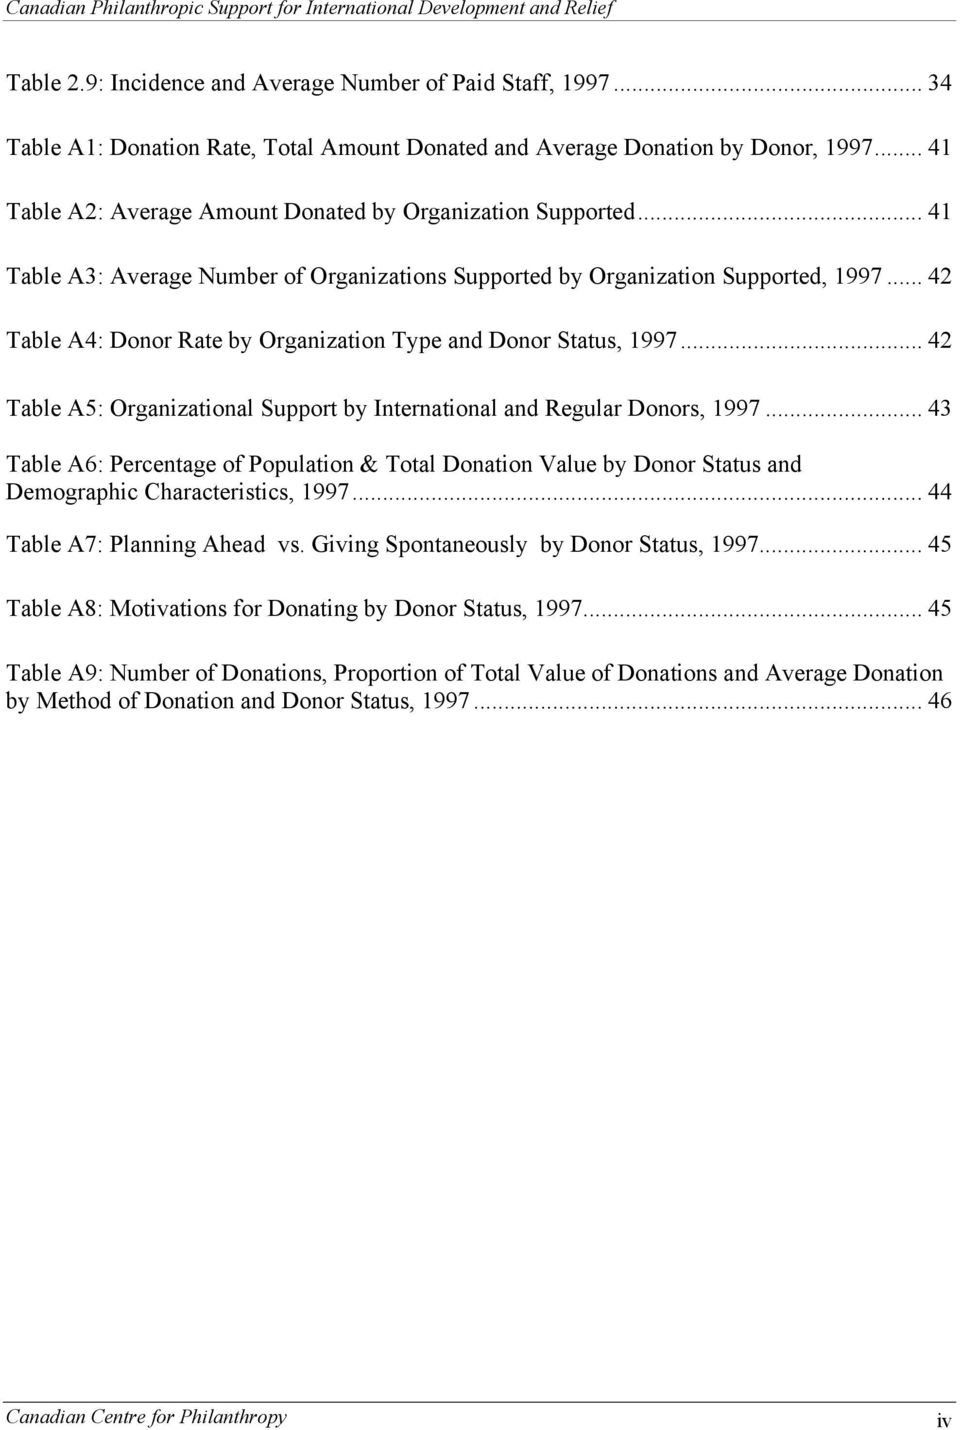 .. 42 Table A4: Donor Rate by Organization Type and Donor Status, 1997... 42 Table A5: Organizational Support by International and Regular Donors, 1997.